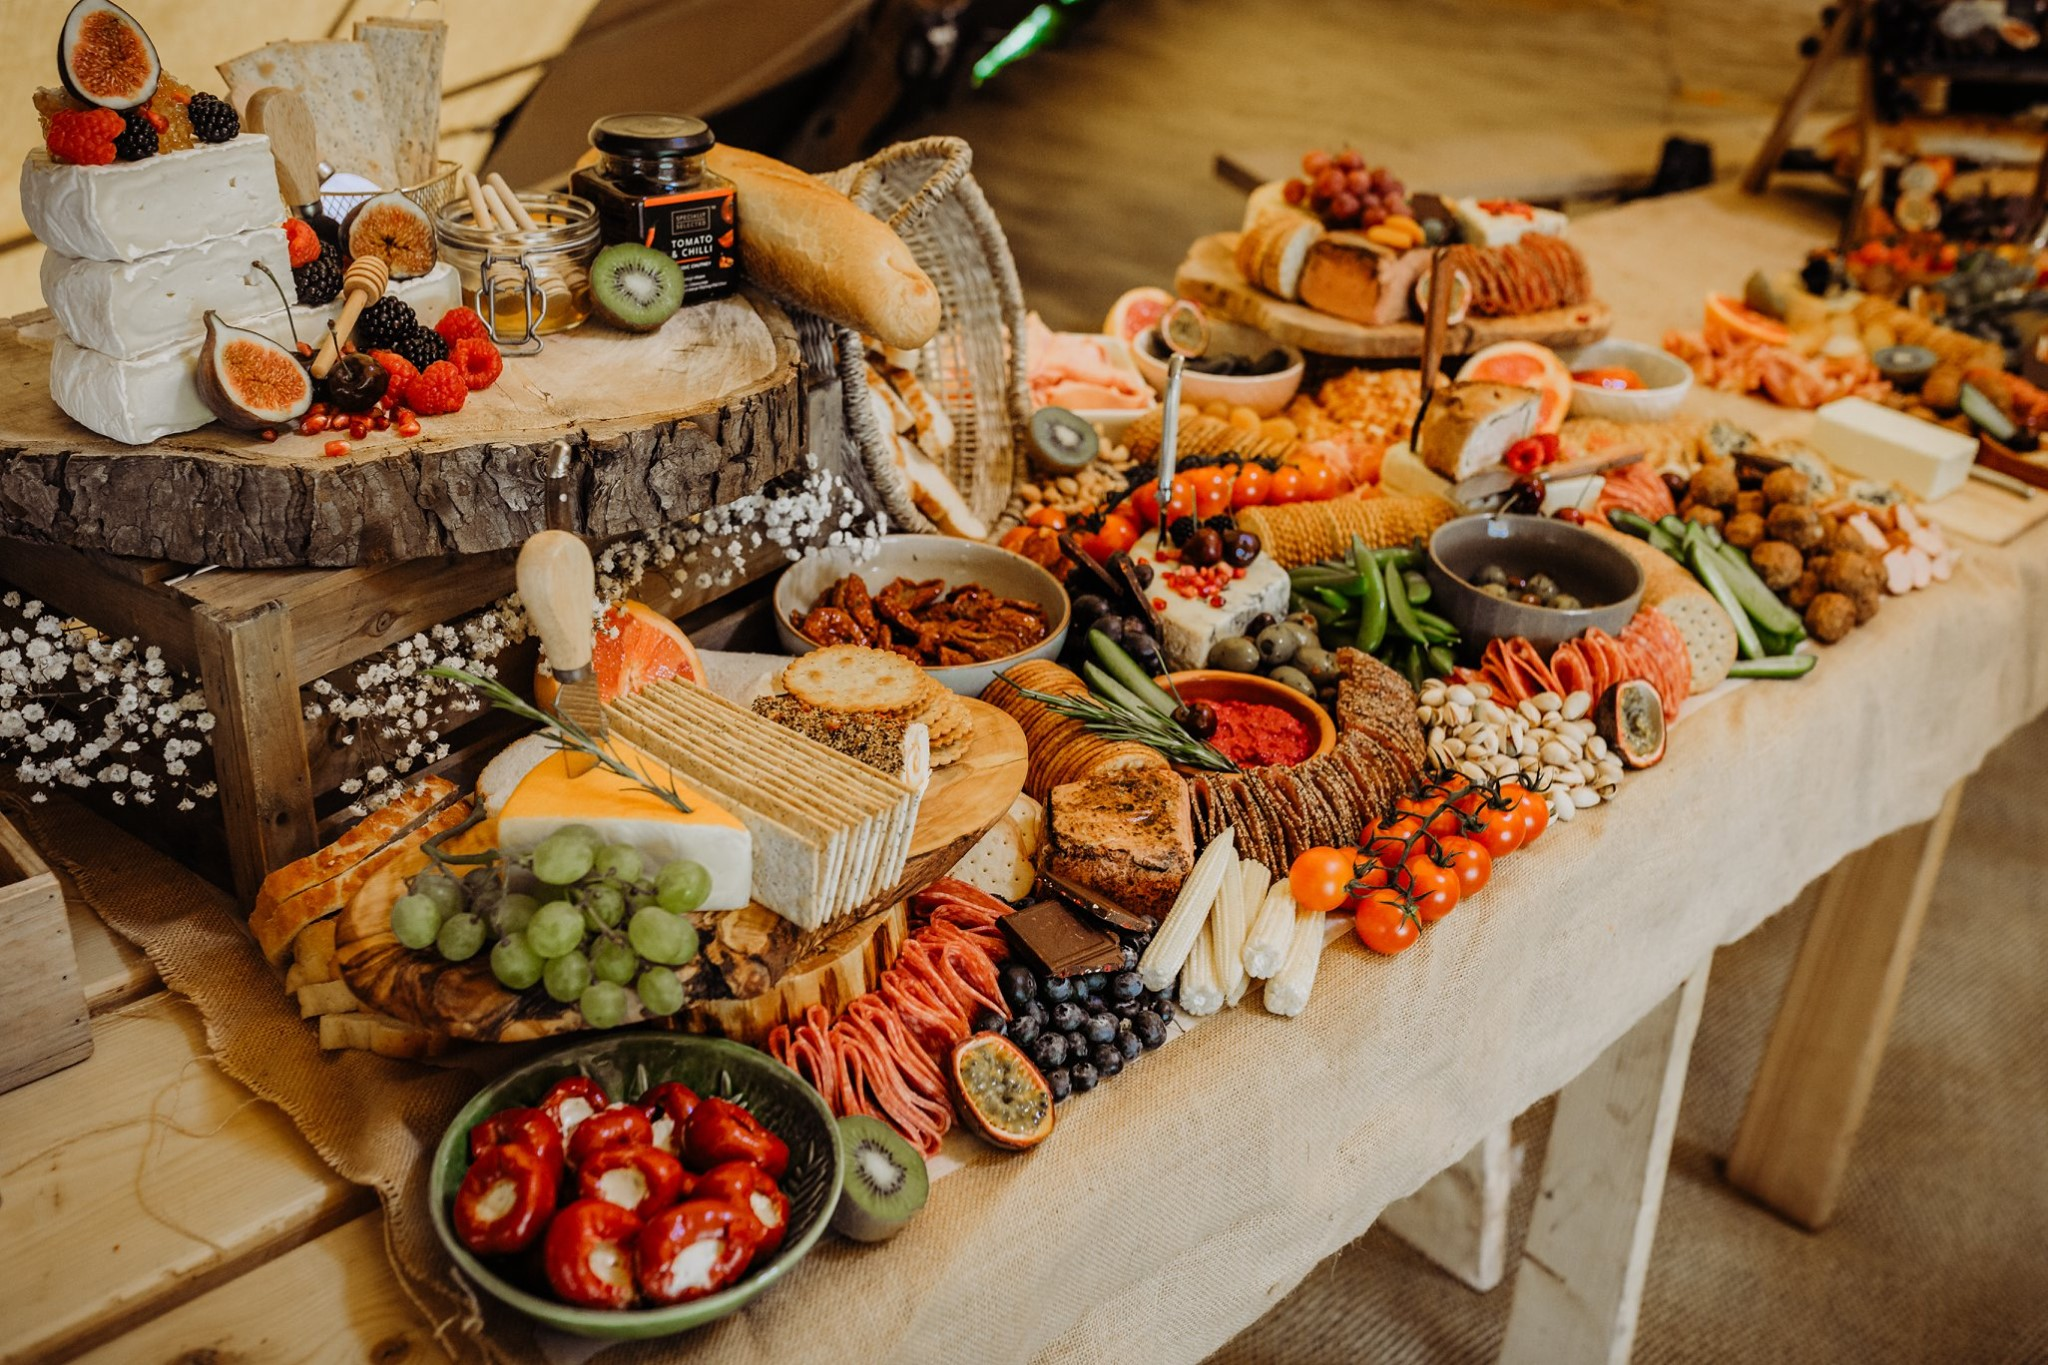 A fully packed Grazing Table by Wild & Brie catering, including breads, crackers, cheese. fruit and vegetable sticks, dips, antipasti, pork pies and pate